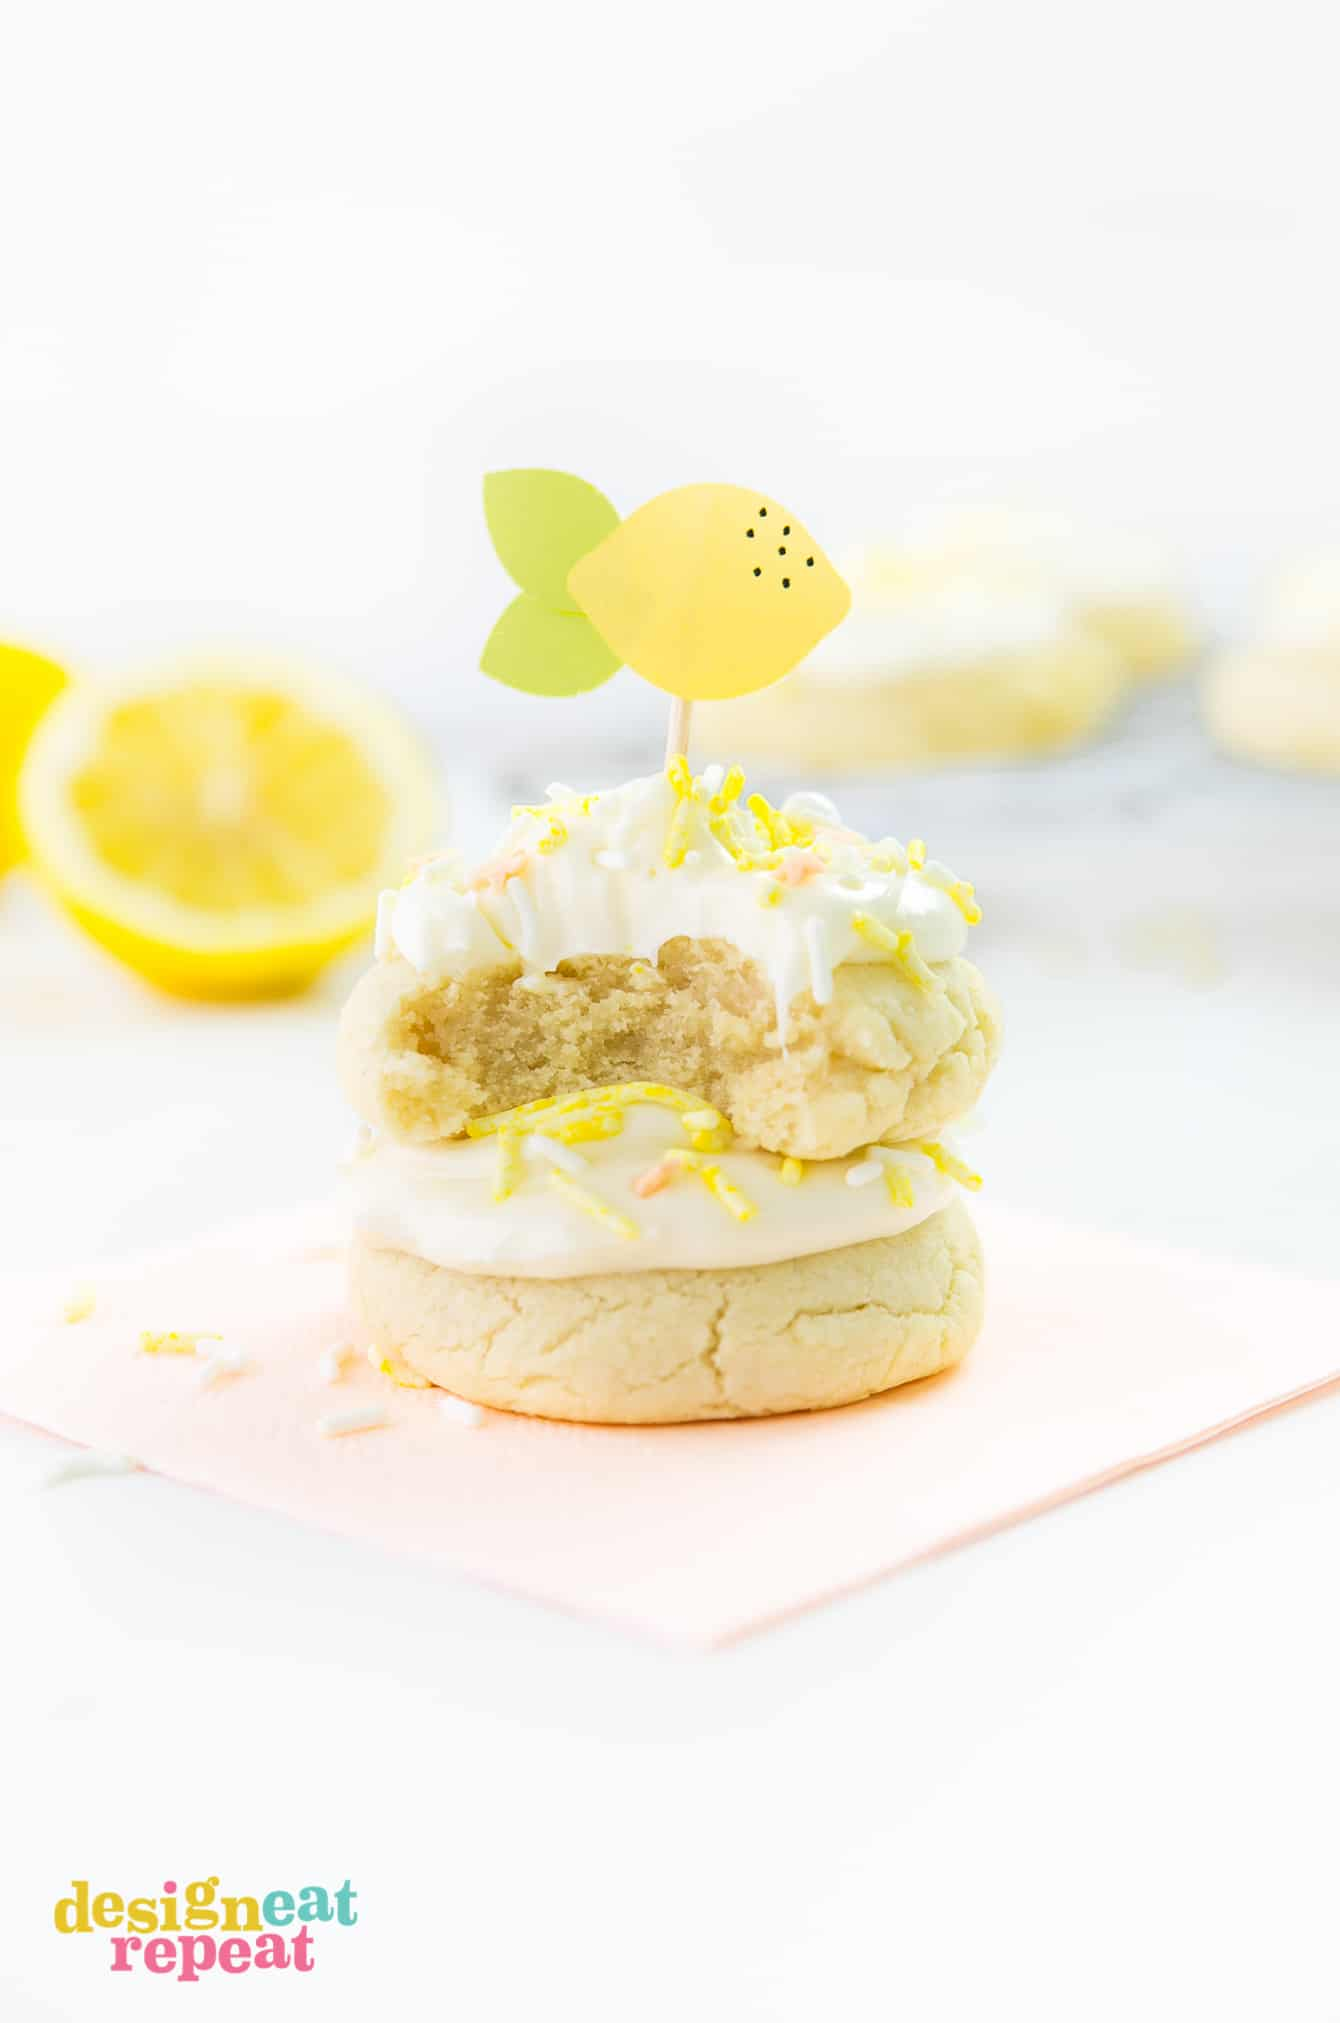 Welcome summertime with these delicious Soft & Thick Lemon Sugar Cookies. They are easy to make and are infused with a refreshing, light lemon flavor! Get the recipe at DesignEatRepeat.com